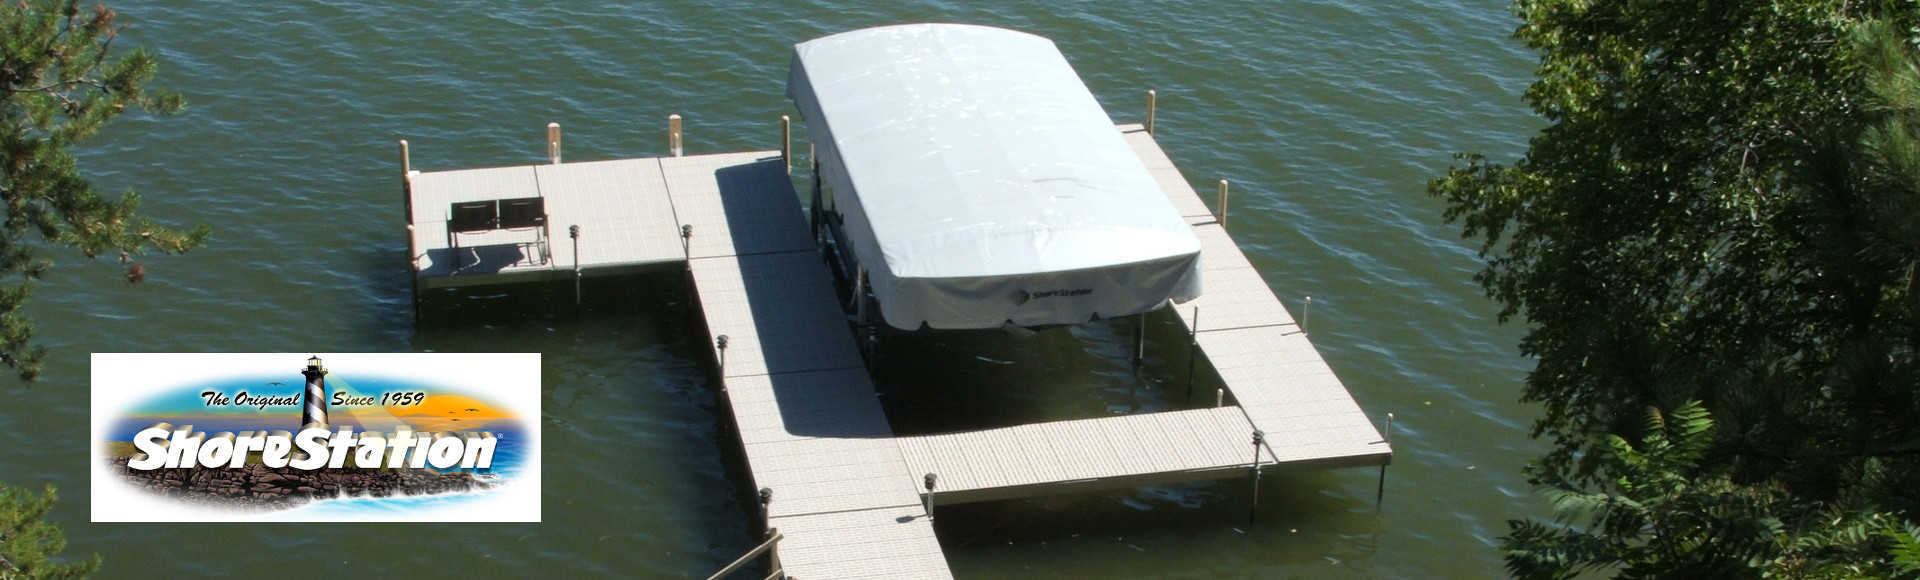 ShoreStation Boat Lift & Dock